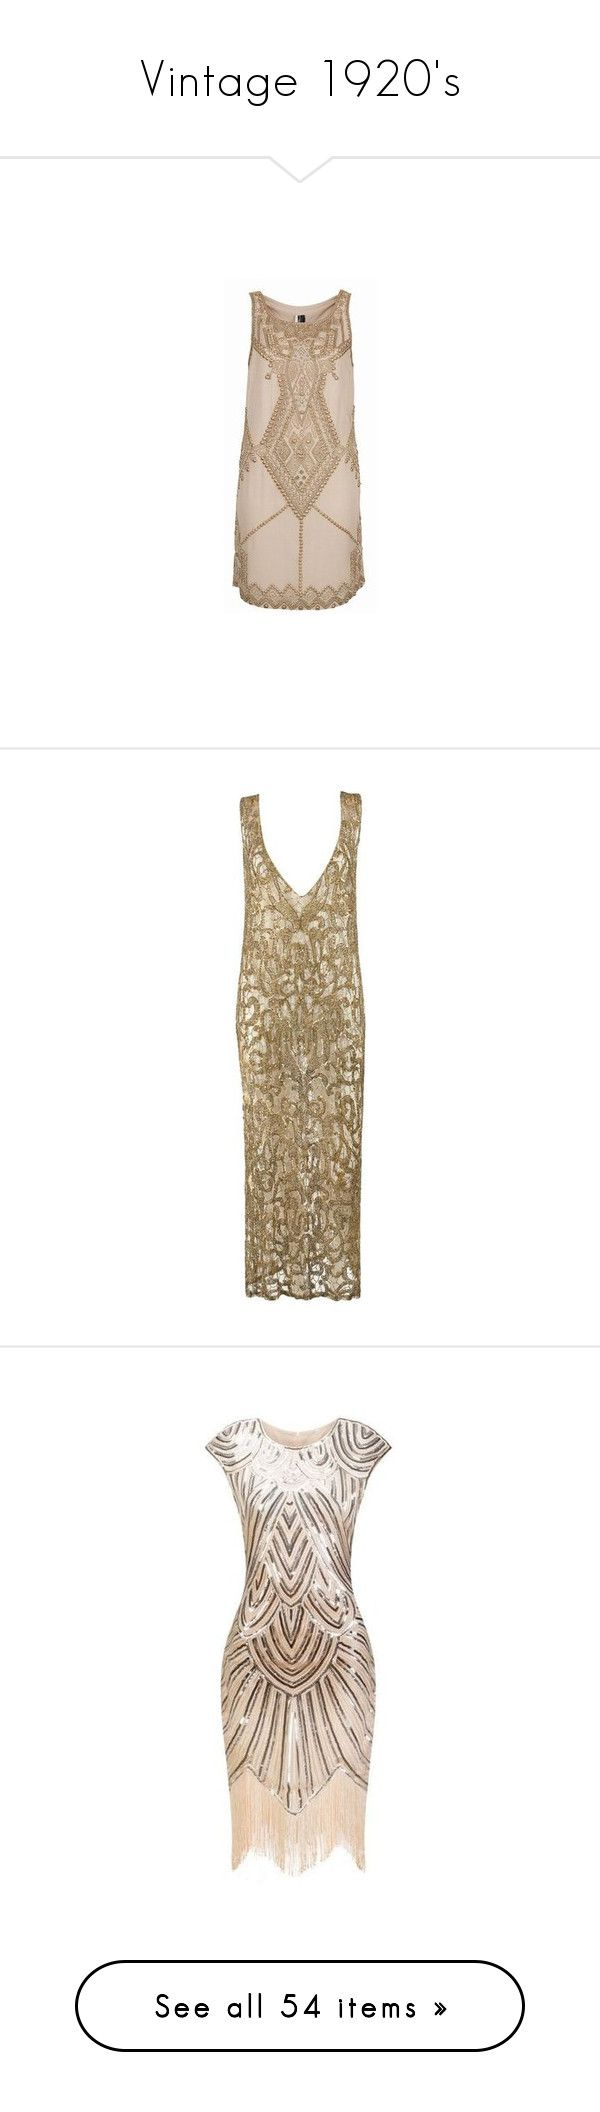 """Vintage 1920's"" by okcini9 ❤ liked on Polyvore featuring dresses, vestido, short dresses, vintage, vestidos, brown, evening dresses, gold sequin cocktail dresses, gold dresses and flapper dresses"